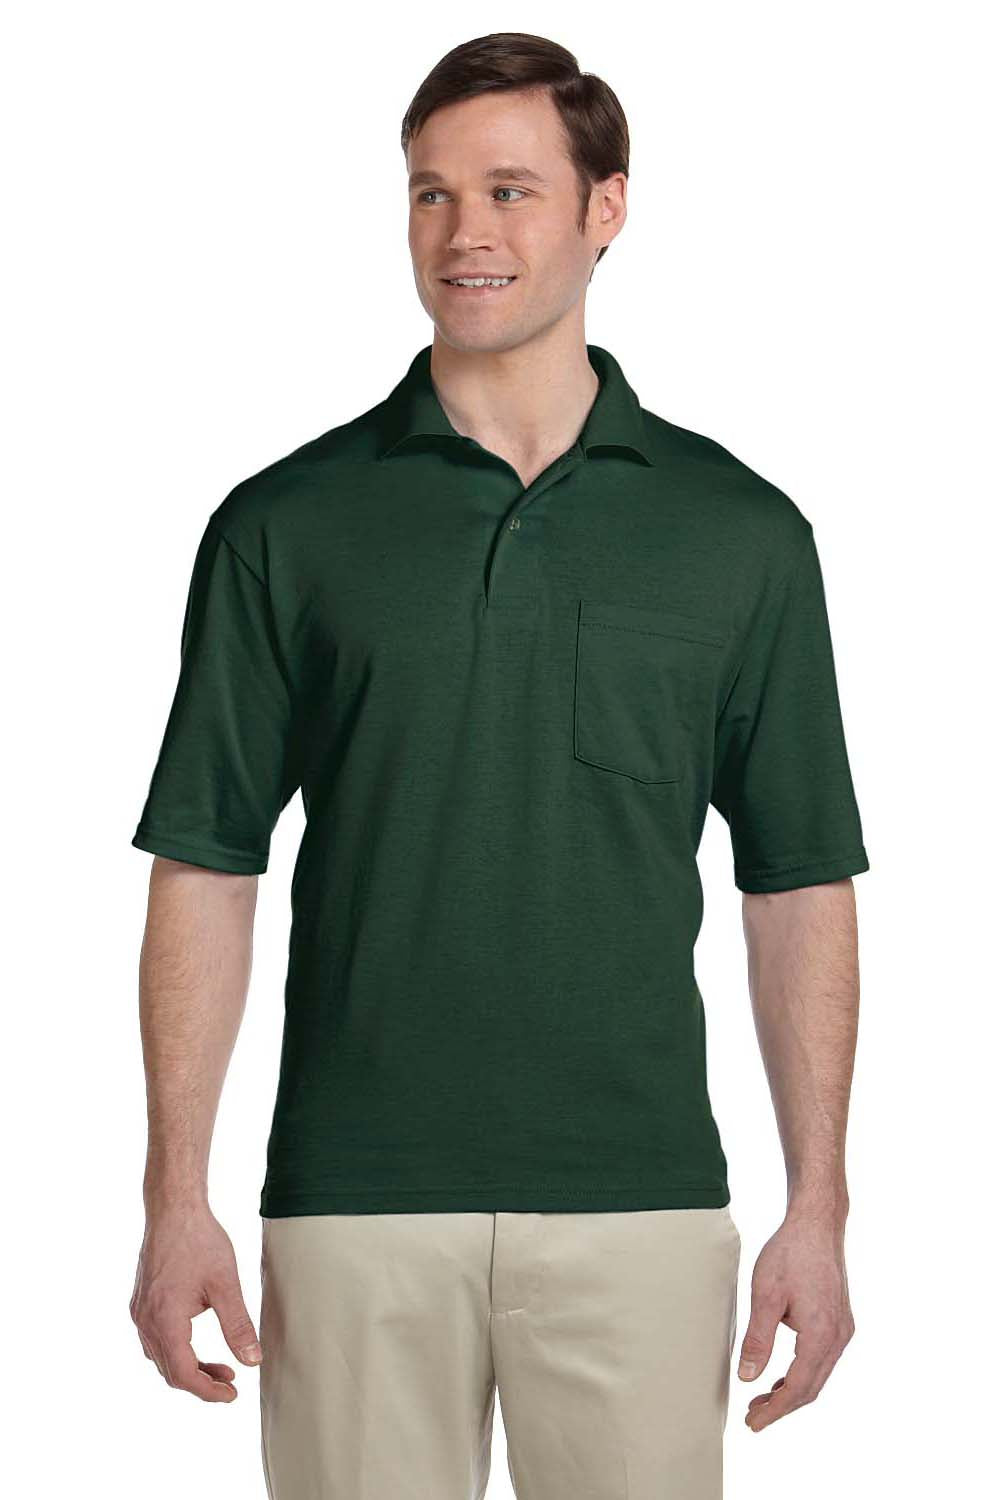 Jerzees Mens SpotShield Stain Resistant Short Sleeve Polo Shirt w/ Pocket - Forest Green